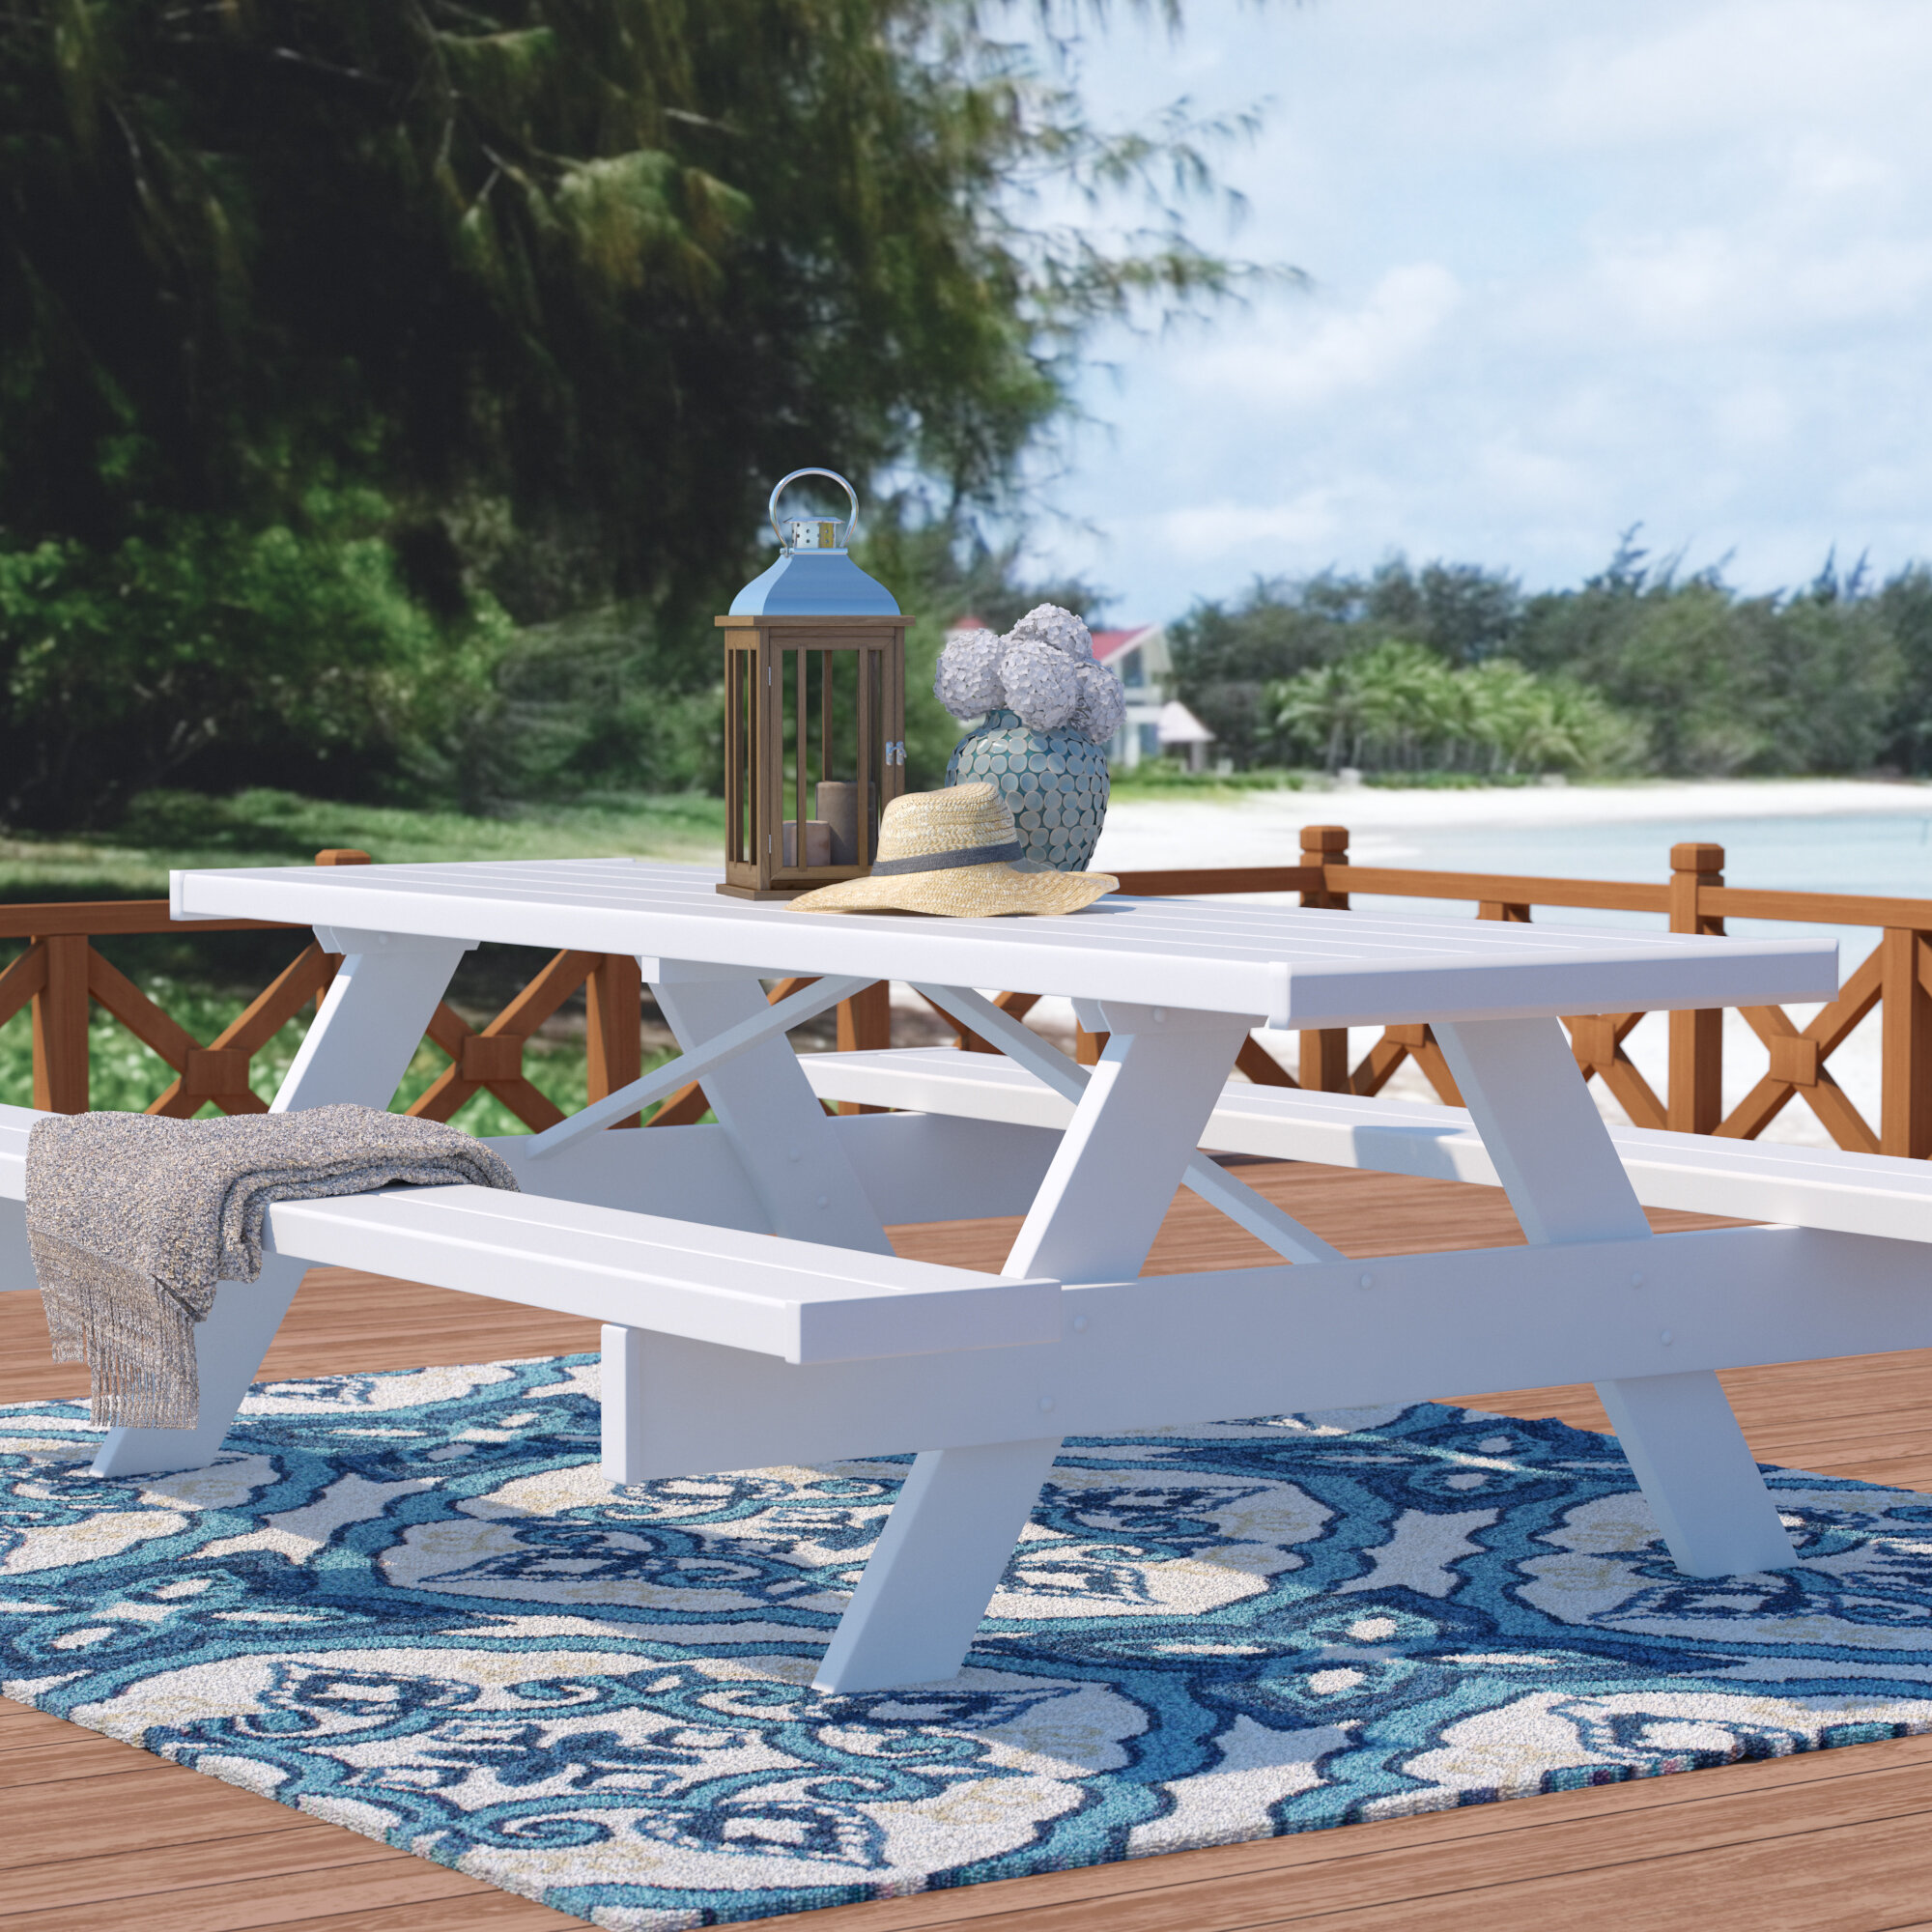 Beachcrest Home Windermere Picnic Table Reviews Wayfair - Ready to assemble picnic table